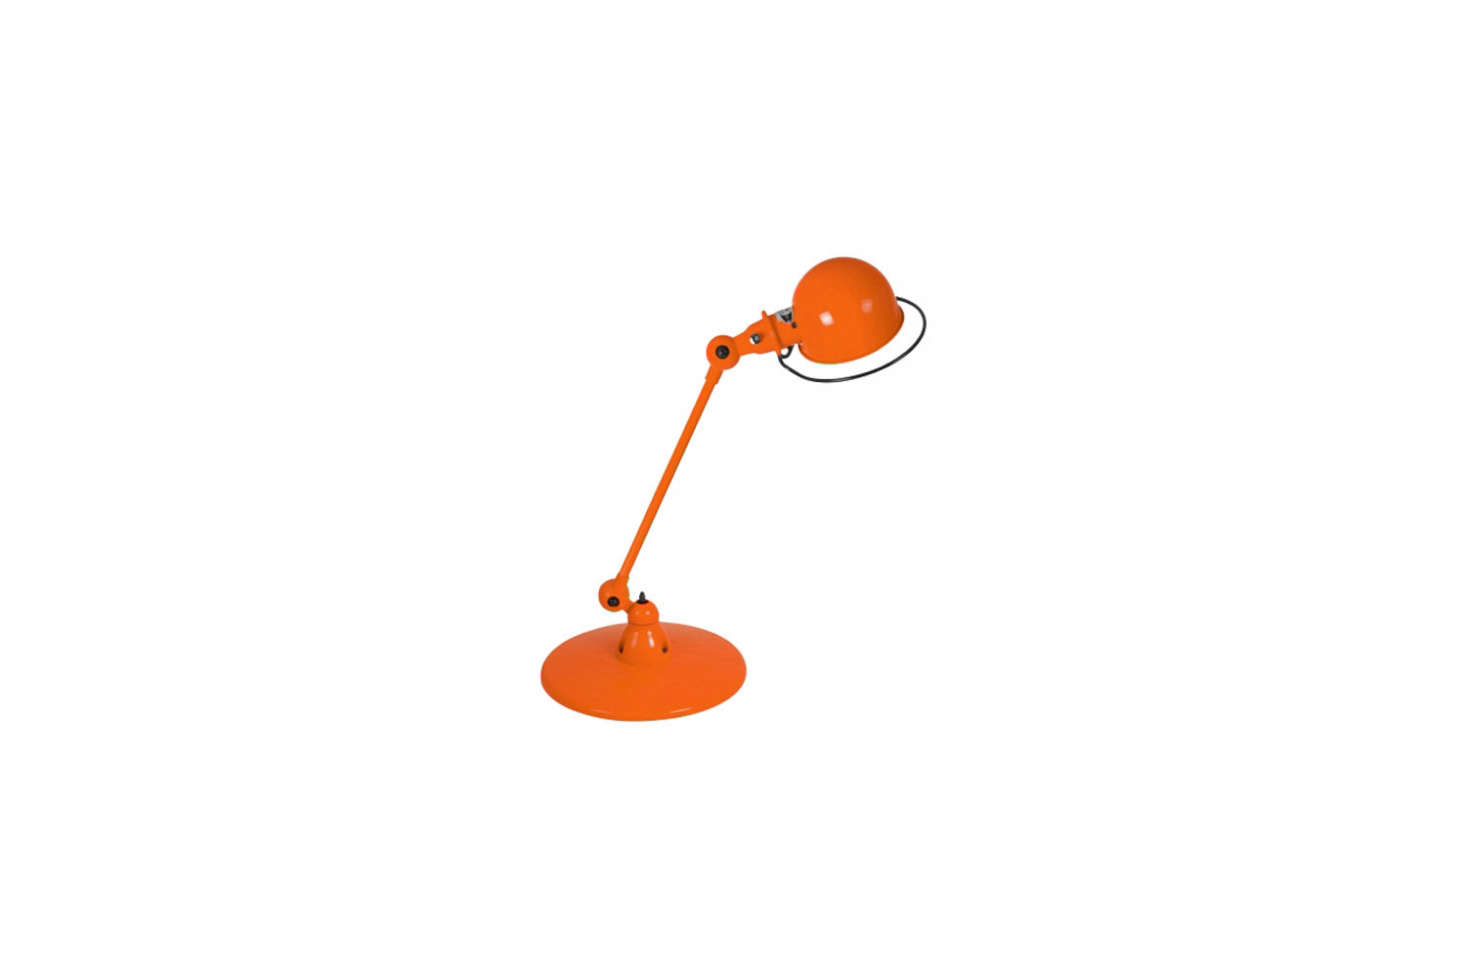 TheJielde Loft Desk Lamp D6000 in orange (shown) is a close match to the vintage Anglepoise orange light in the kitchen. You can source it from Horne for $src=